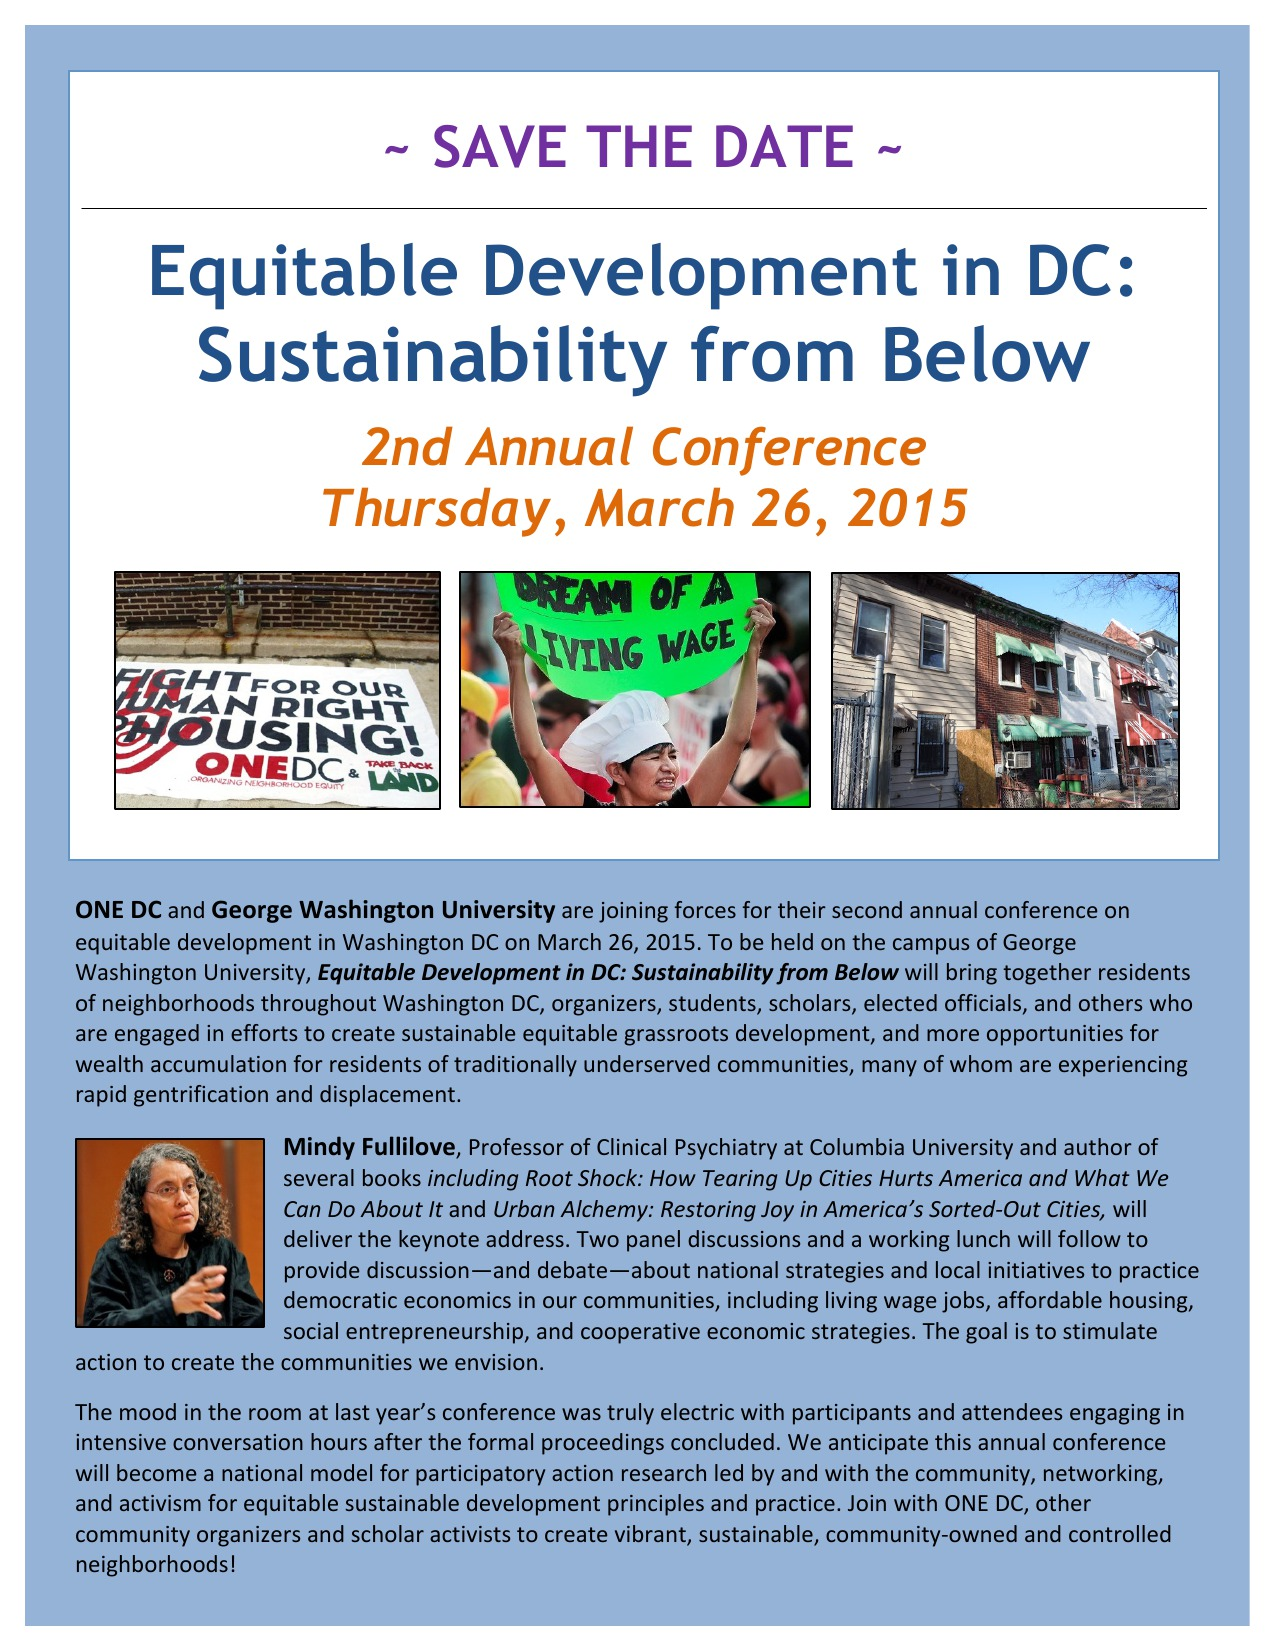 equitable_development_symp_2015.jpg